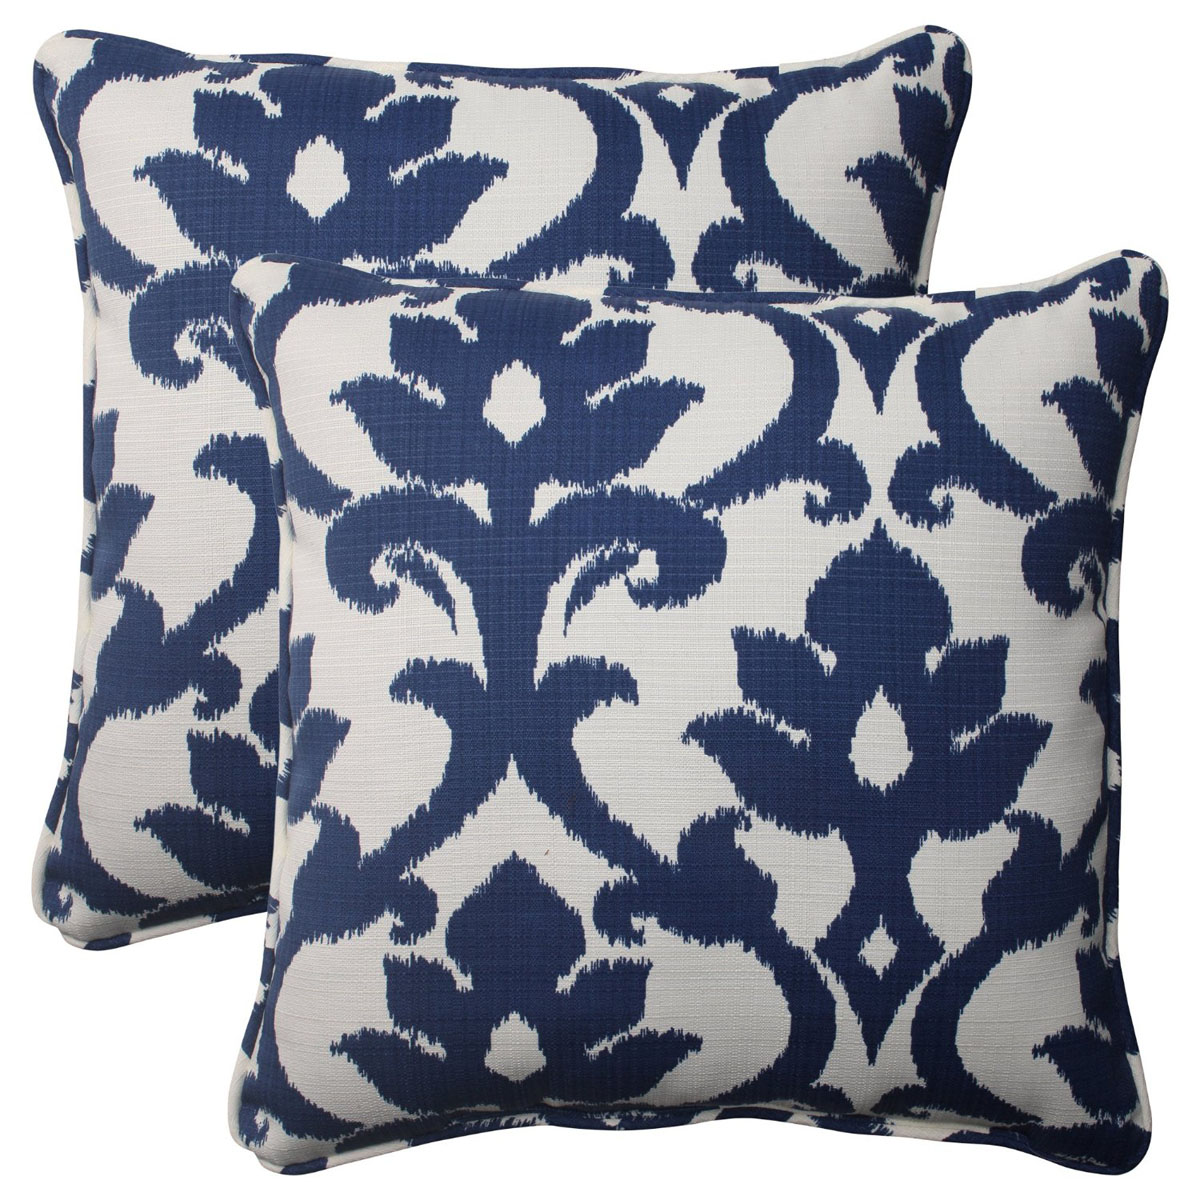 Decorative Pillows For Blue Couch : Blue Throw Pillows Home Decorator Shop